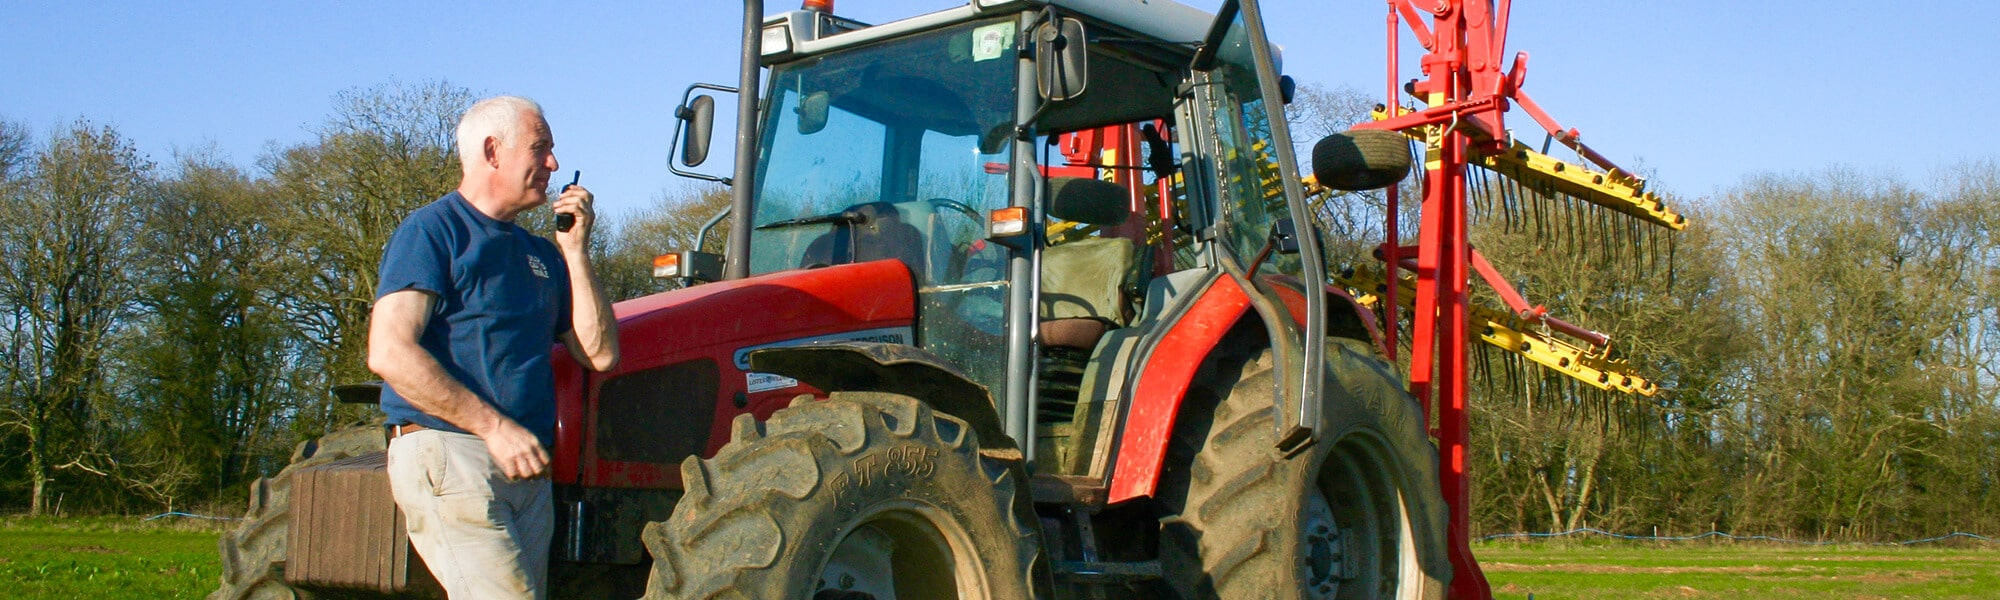 Better Communication on the Farm: Tips for Buying Two Way Radios